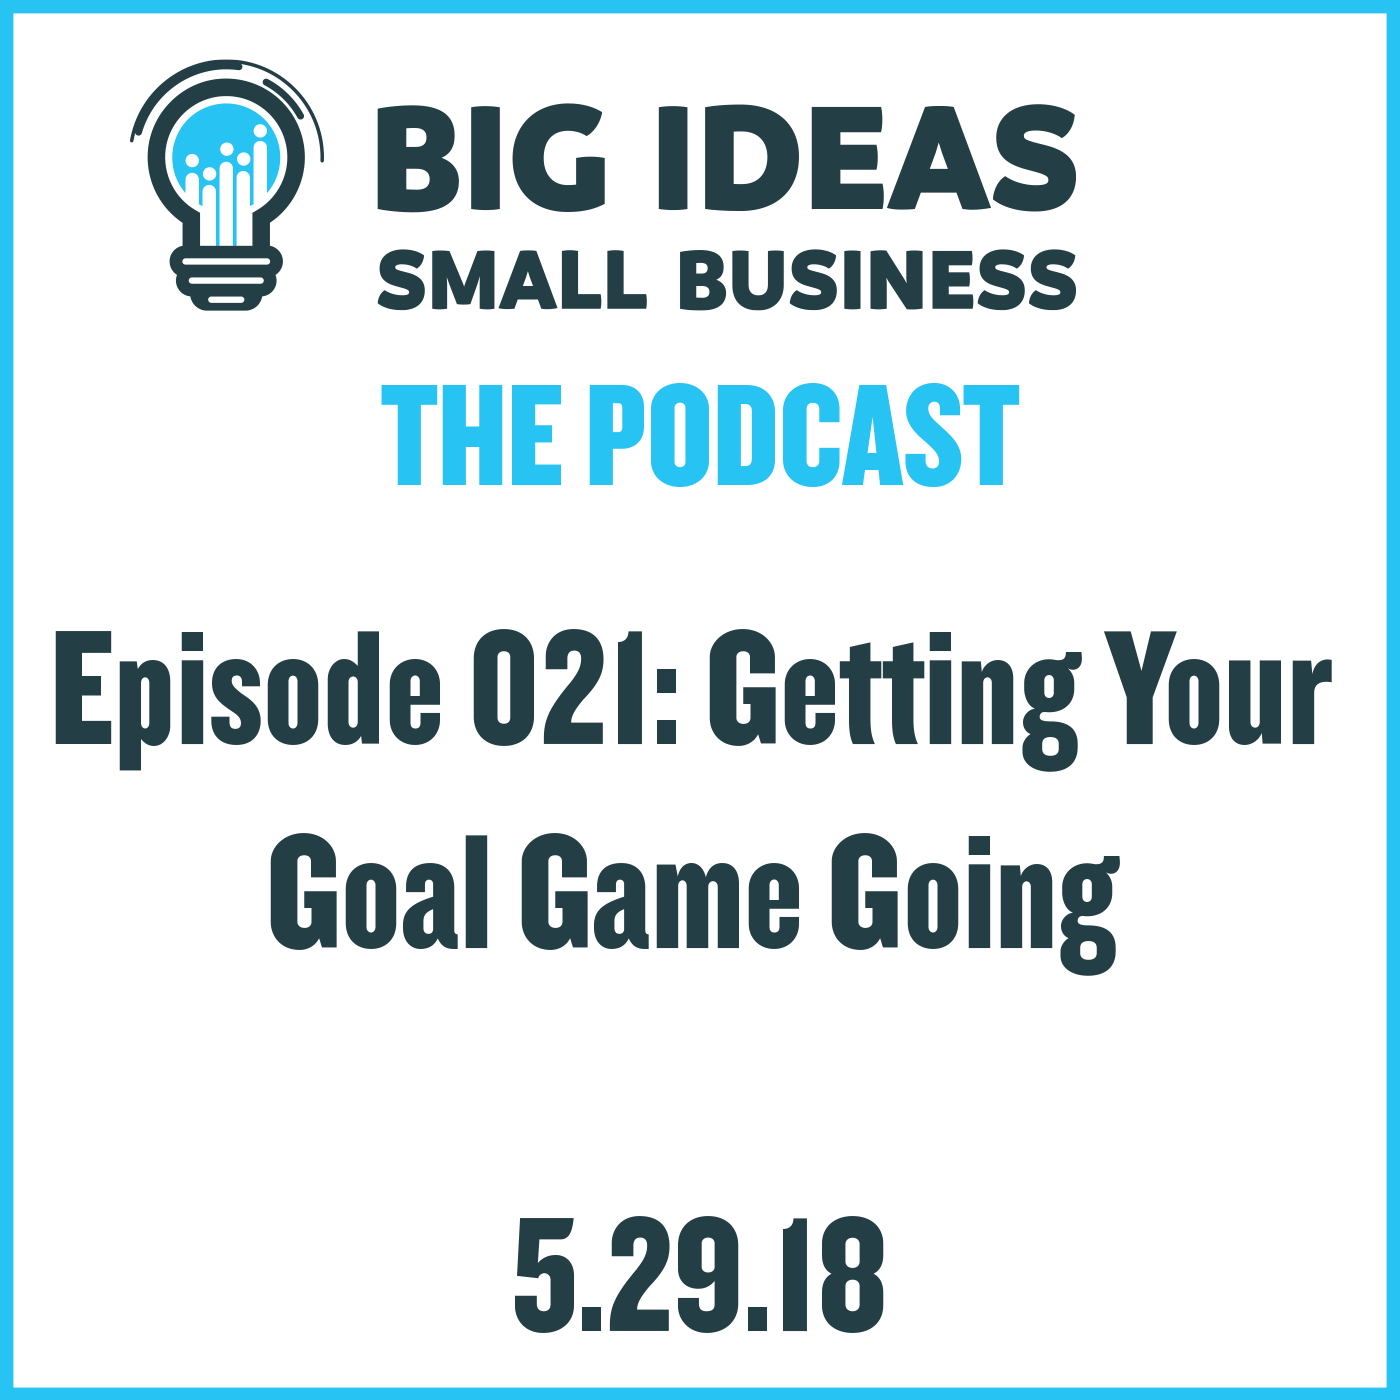 Get Your Goal Game Going – Big Ideas Small Business Podcast